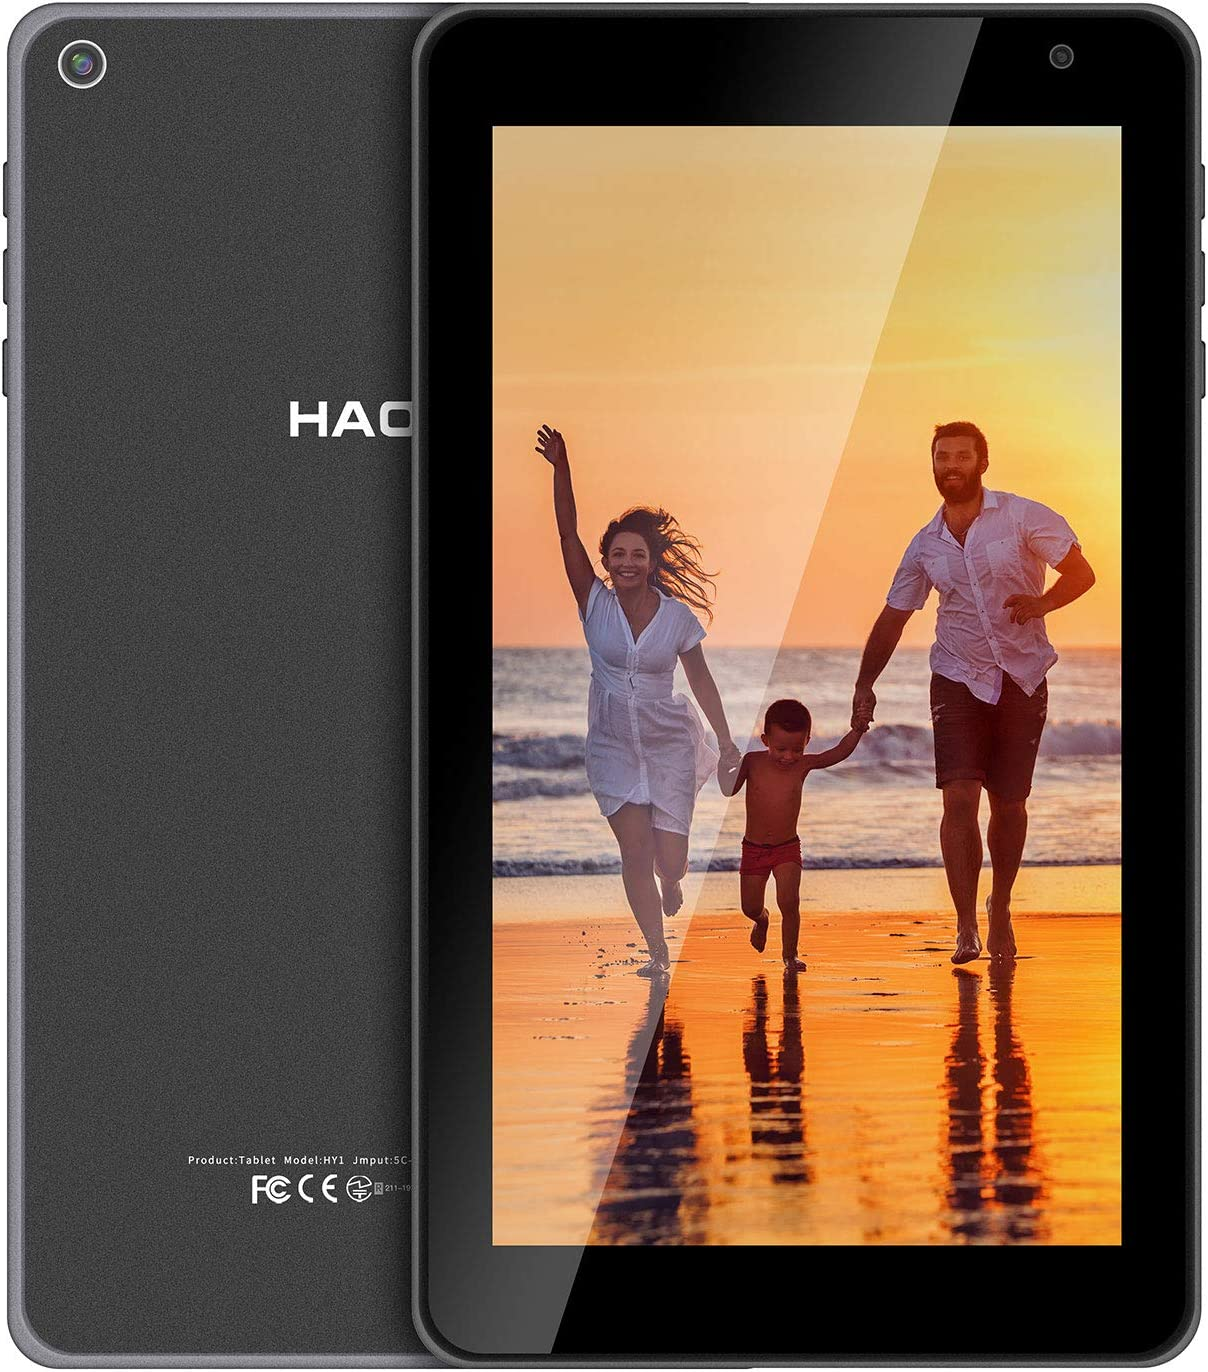 HAOVM 7inch Android Tablet, Android 10.0 Android Q Mediapad P7, Quad-Core 1.4GHz Processor, 32GB Storage, Dual Camera, 1024x 600 IPS HD Display, GPS, FM, BT4.2, 5.0 WiFi Tablet Non-Scratch Glass Back